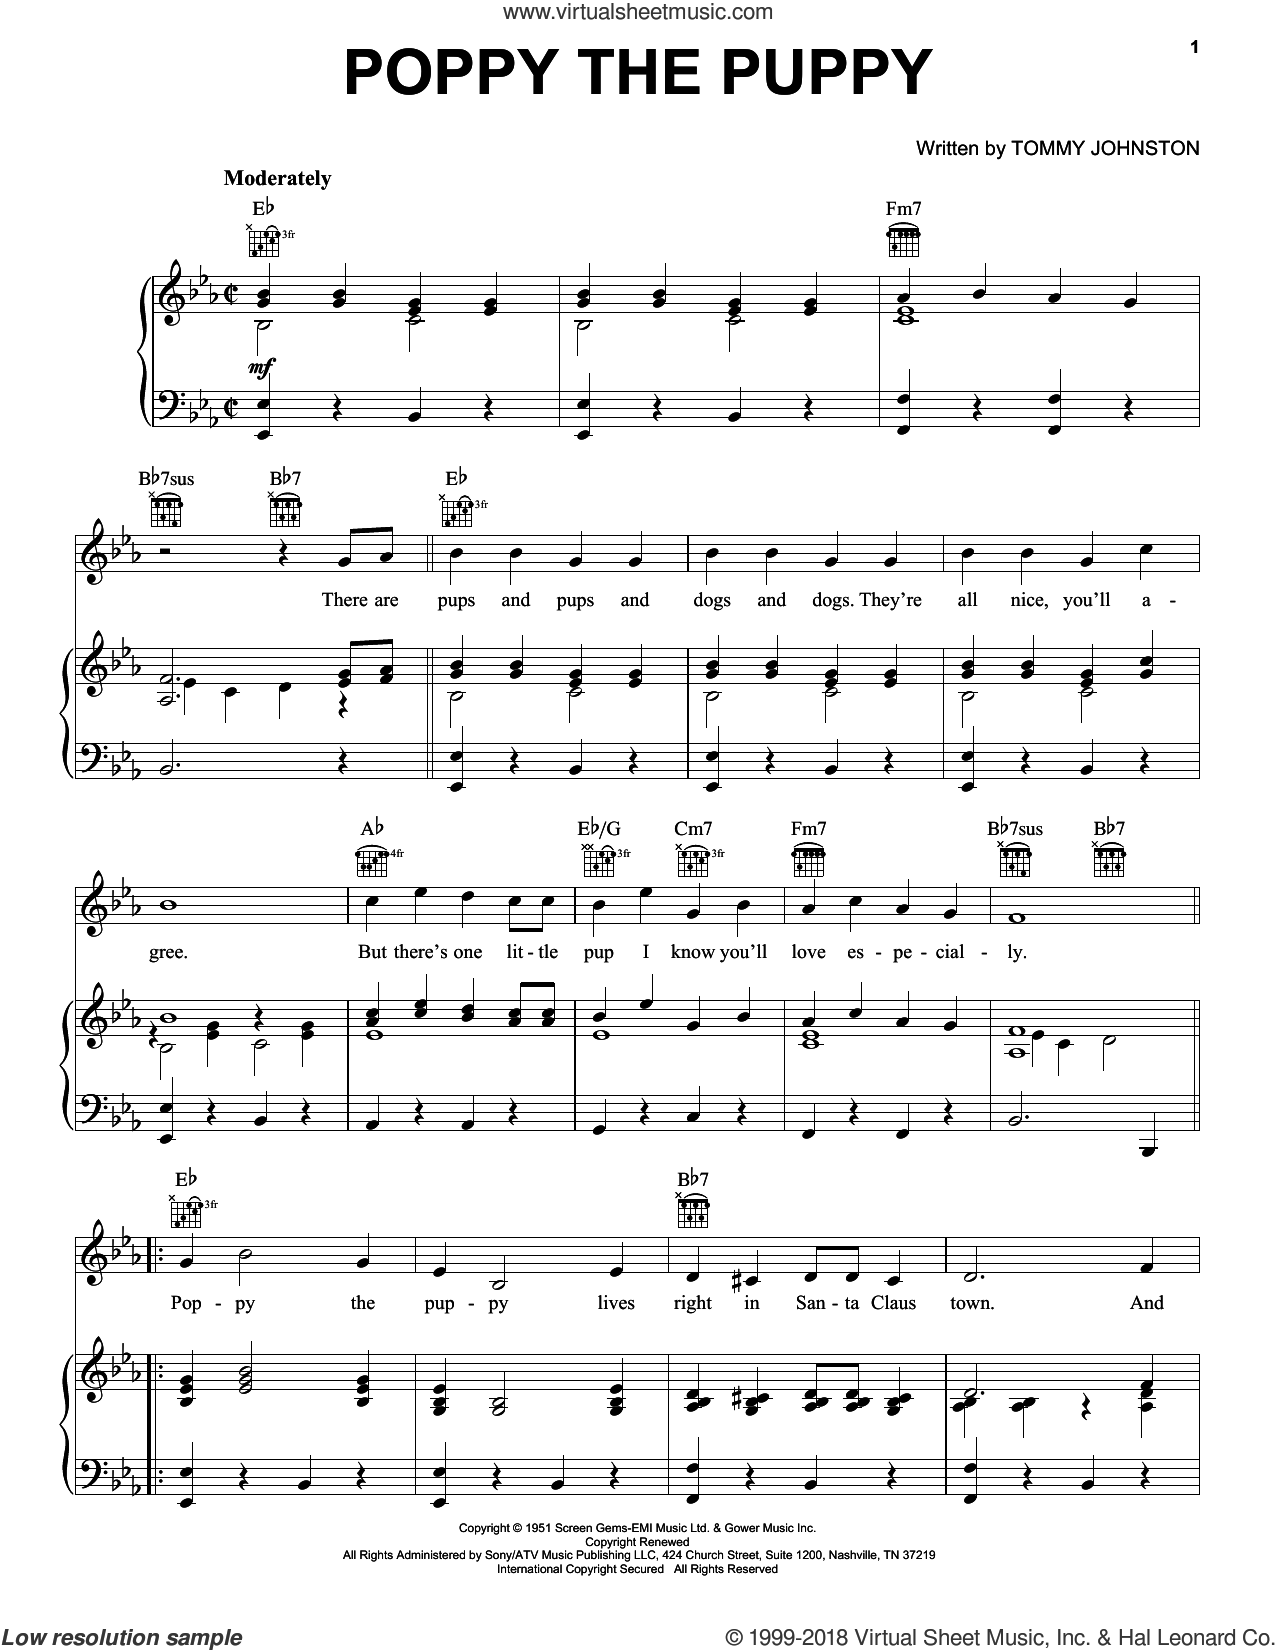 Poppy The Puppy sheet music for voice, piano or guitar by T. Johnson and Gene Autry. Score Image Preview.